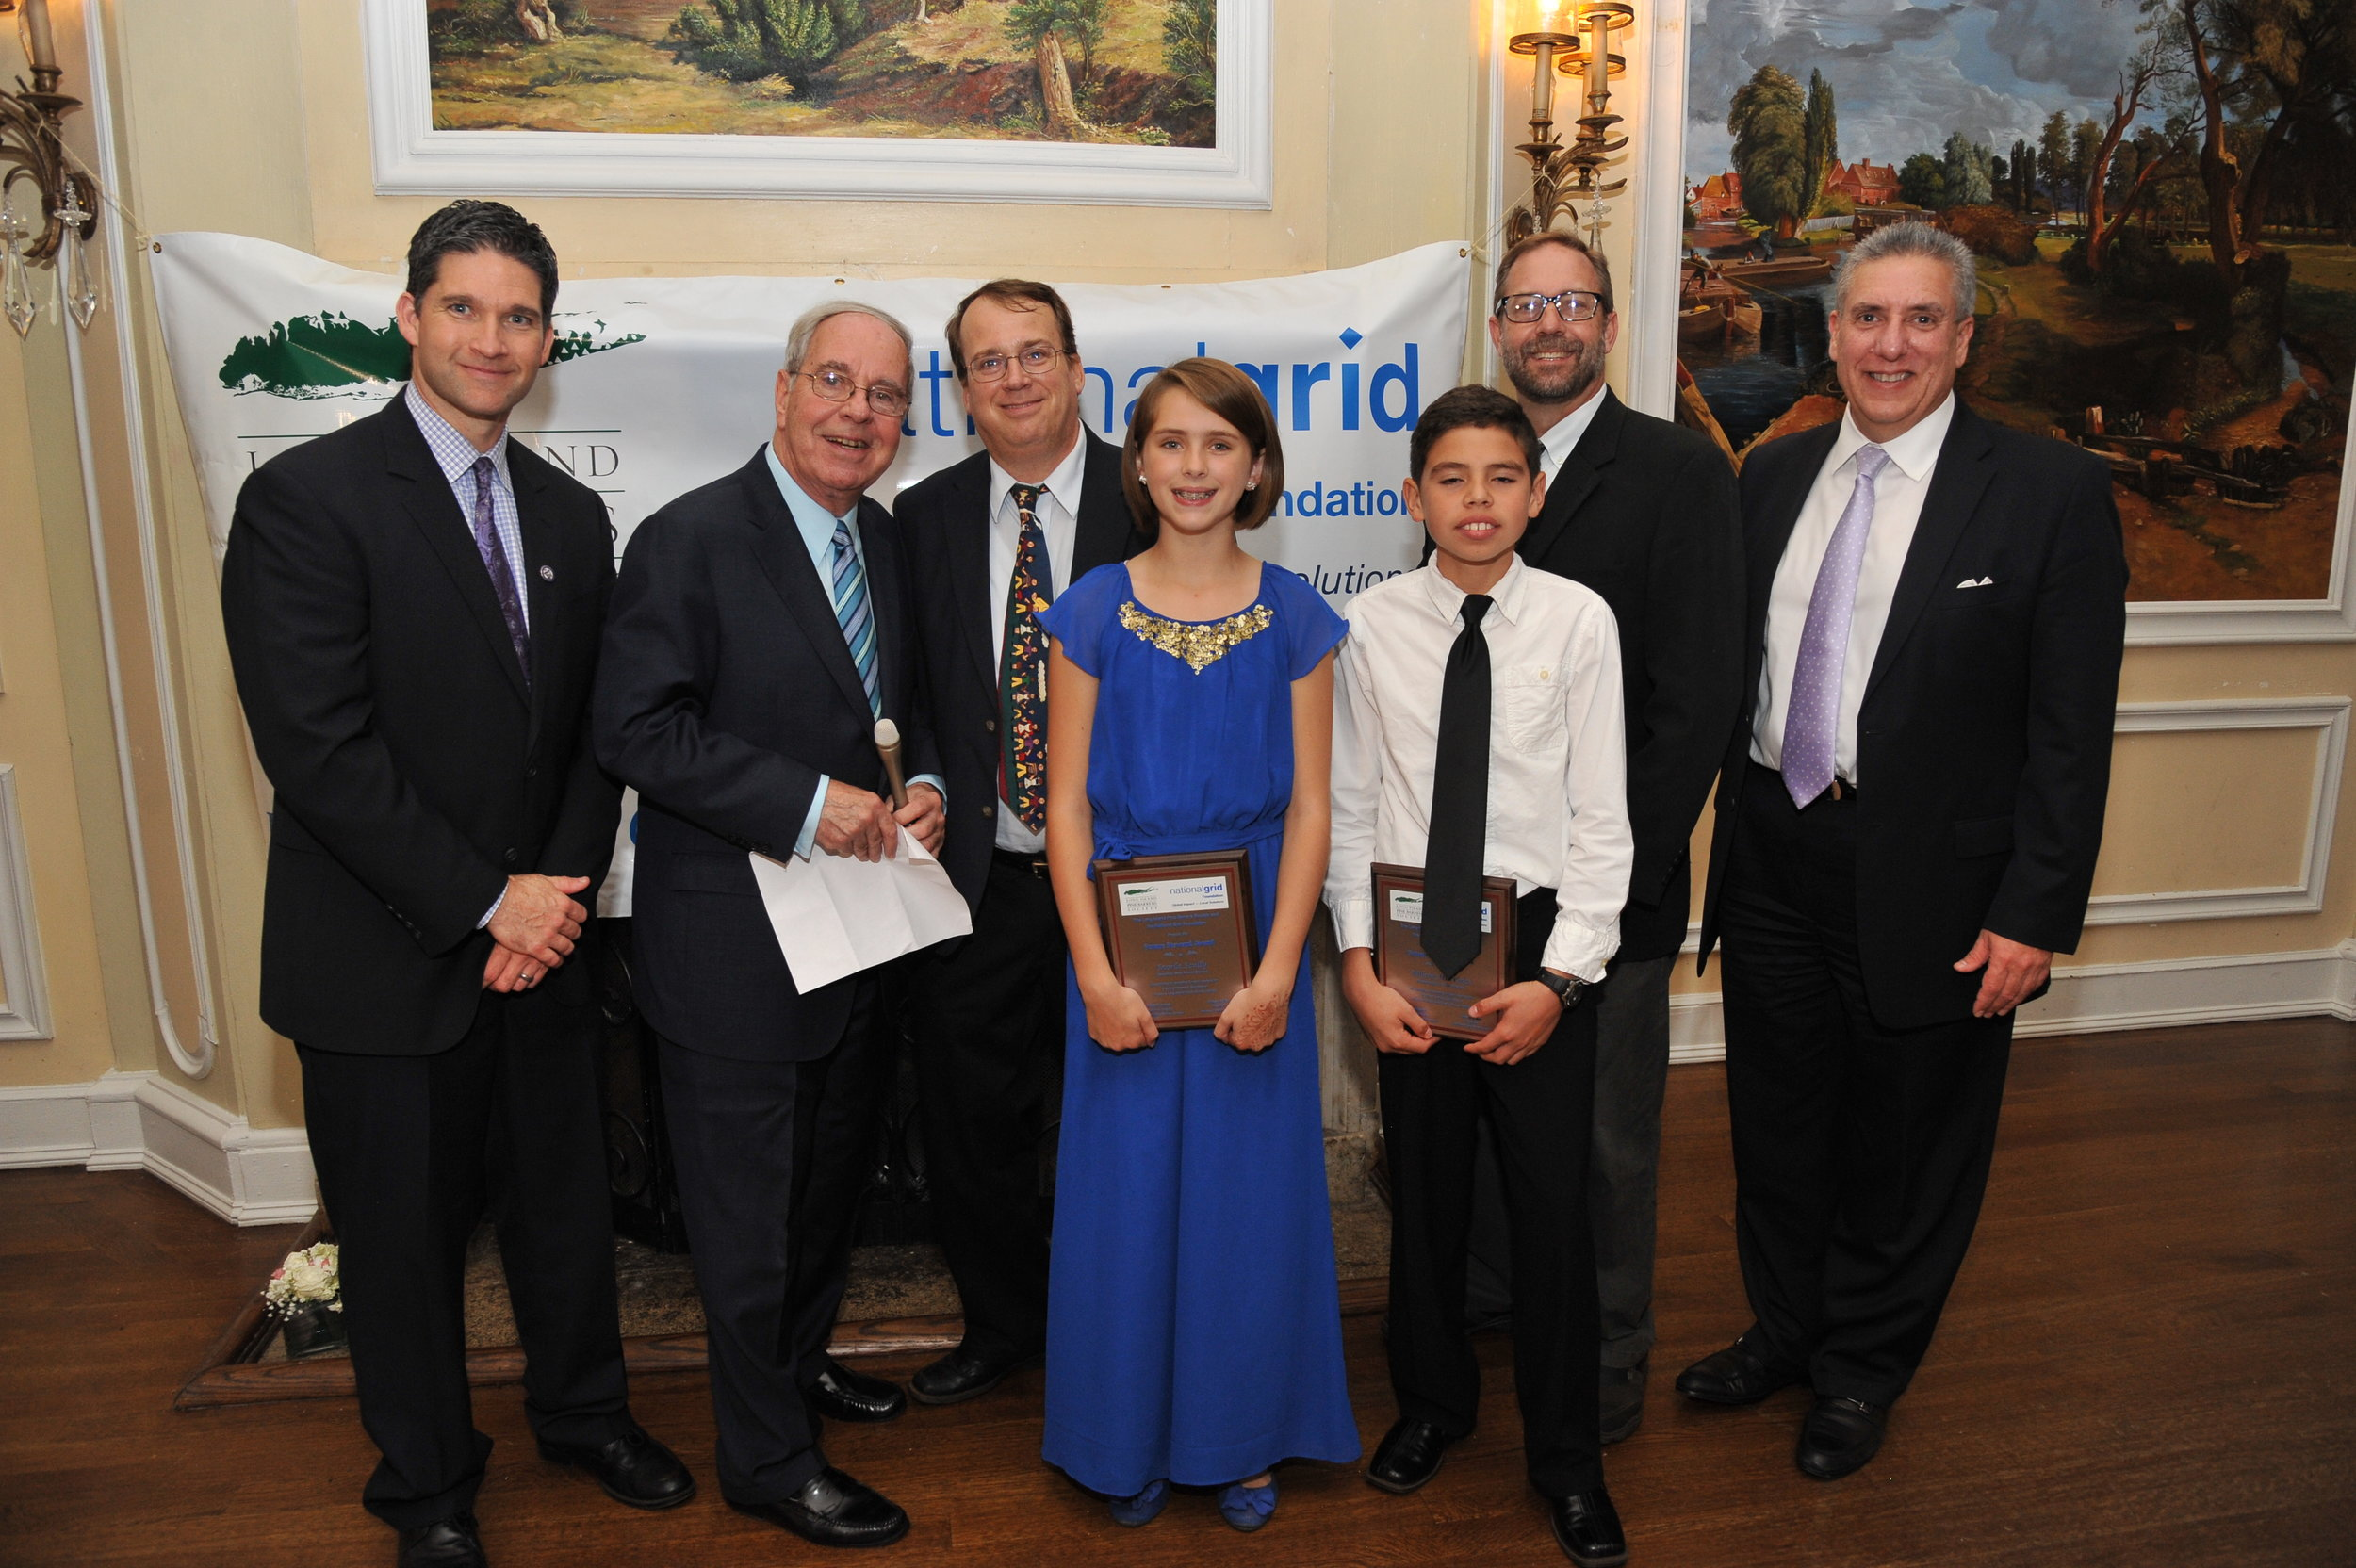 Winners are honored at the Society's Environmental Awards Gala at Oheka Castle.